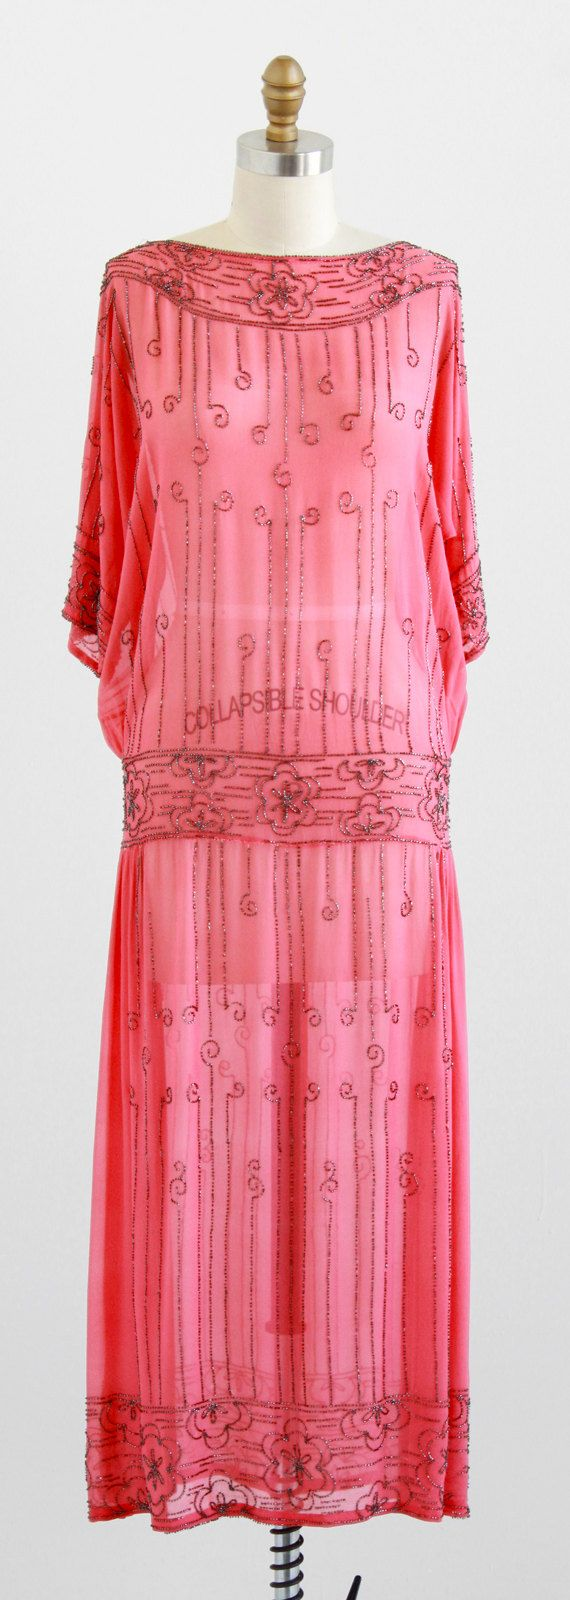 vintage 1920s pink silk chiffon dress with marcasite beads |